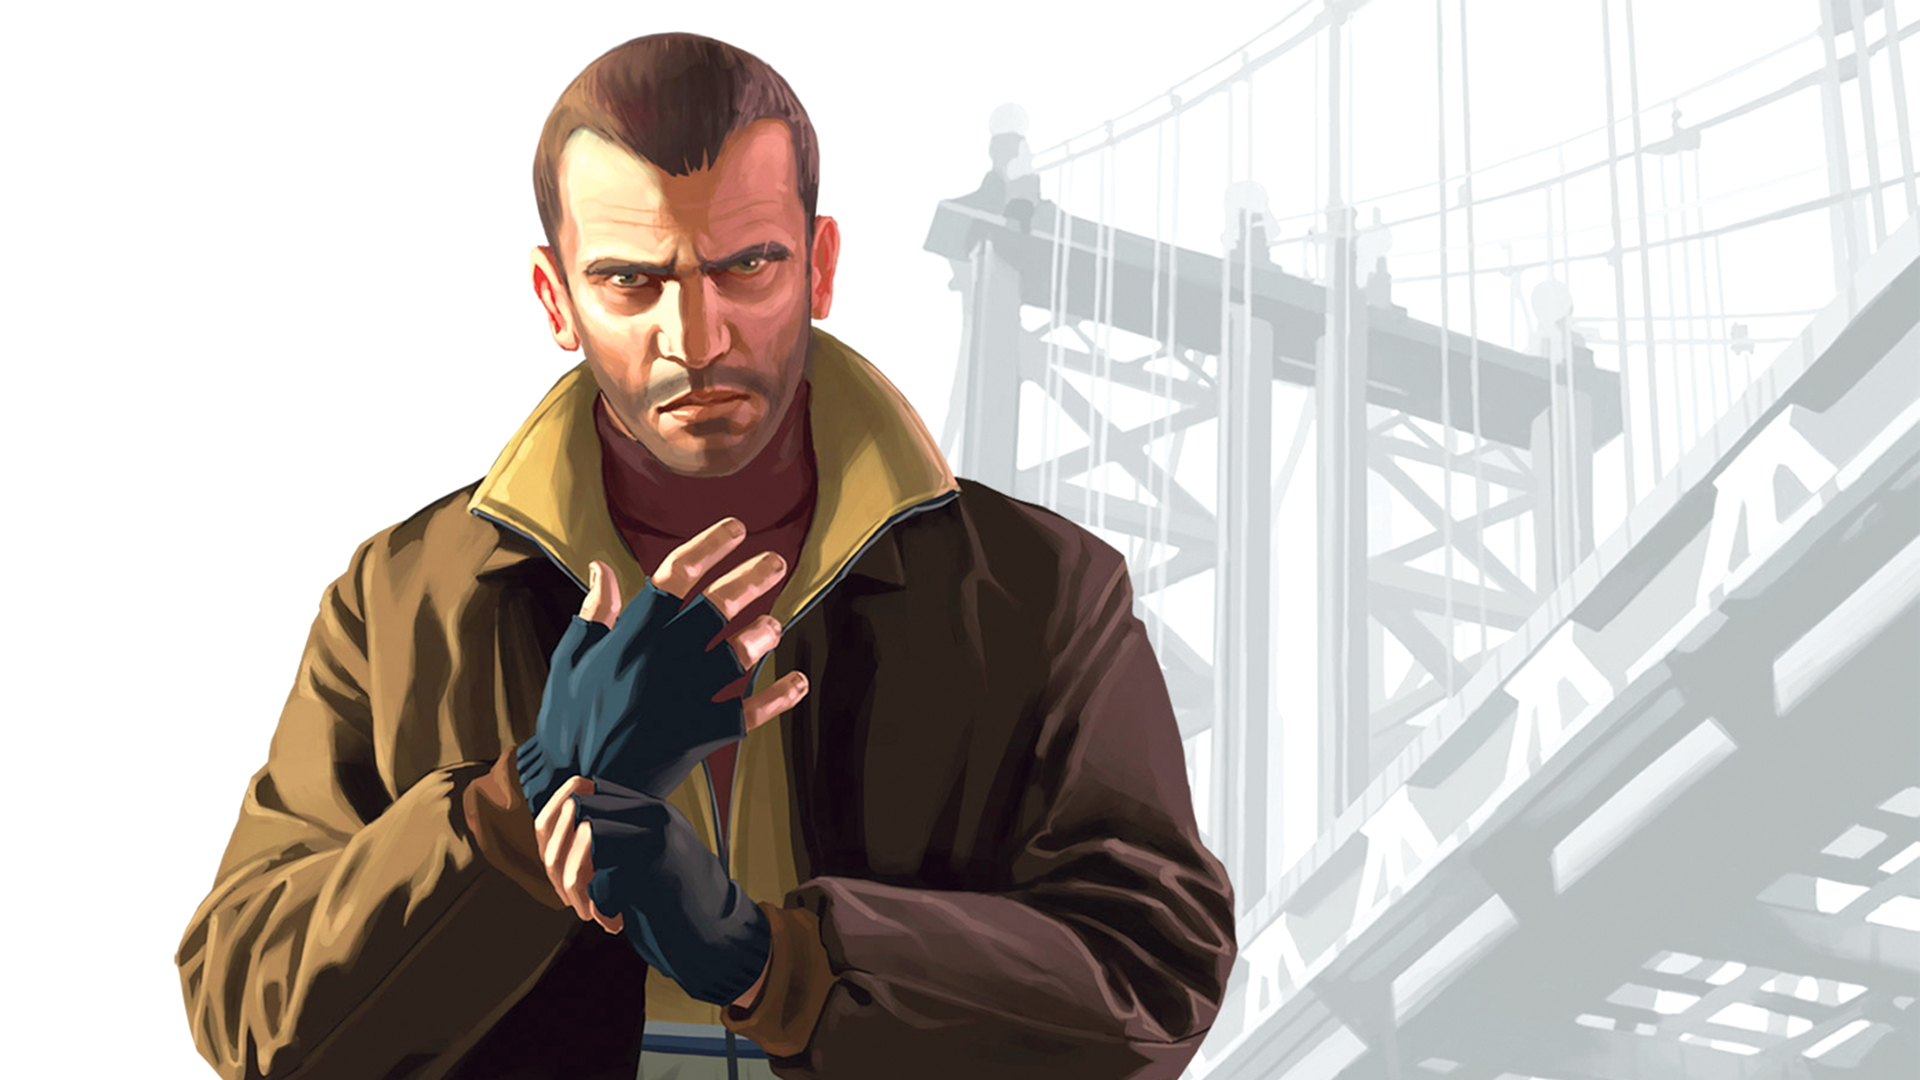 gta 4 artwork